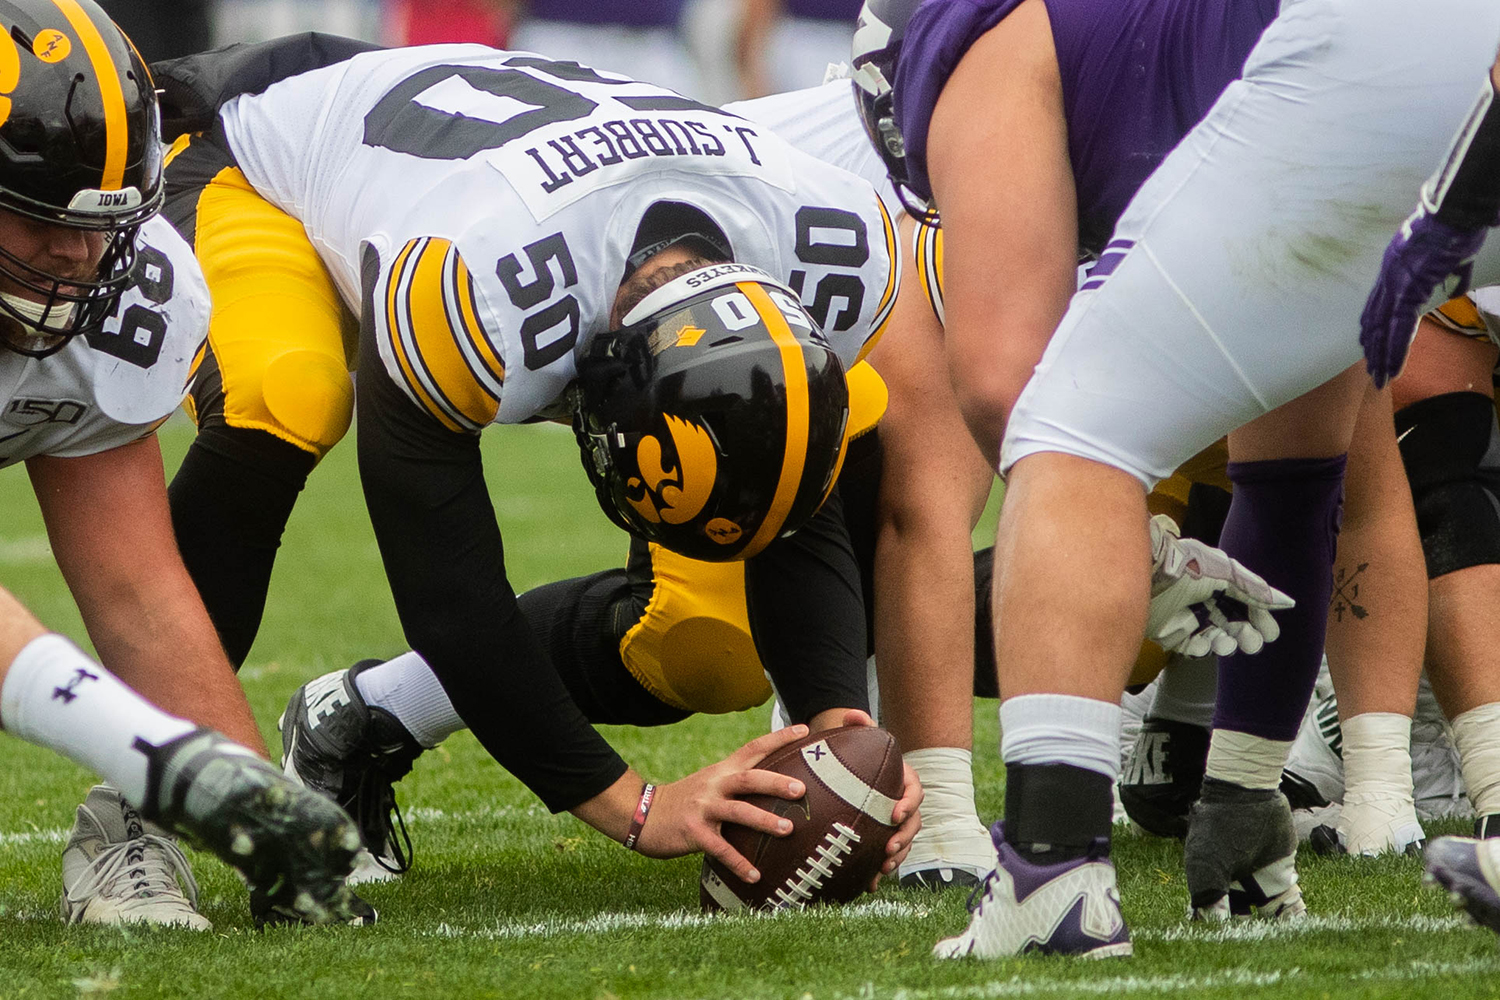 Iowa long snapper Jackson Subbert snaps the ball during a game against Northwestern at Ryan Field on Saturday, October 26, 2019. The Hawkeyes defeated the Wildcats 20-0. (Megan Nagorzanski/The Daily Iowan)